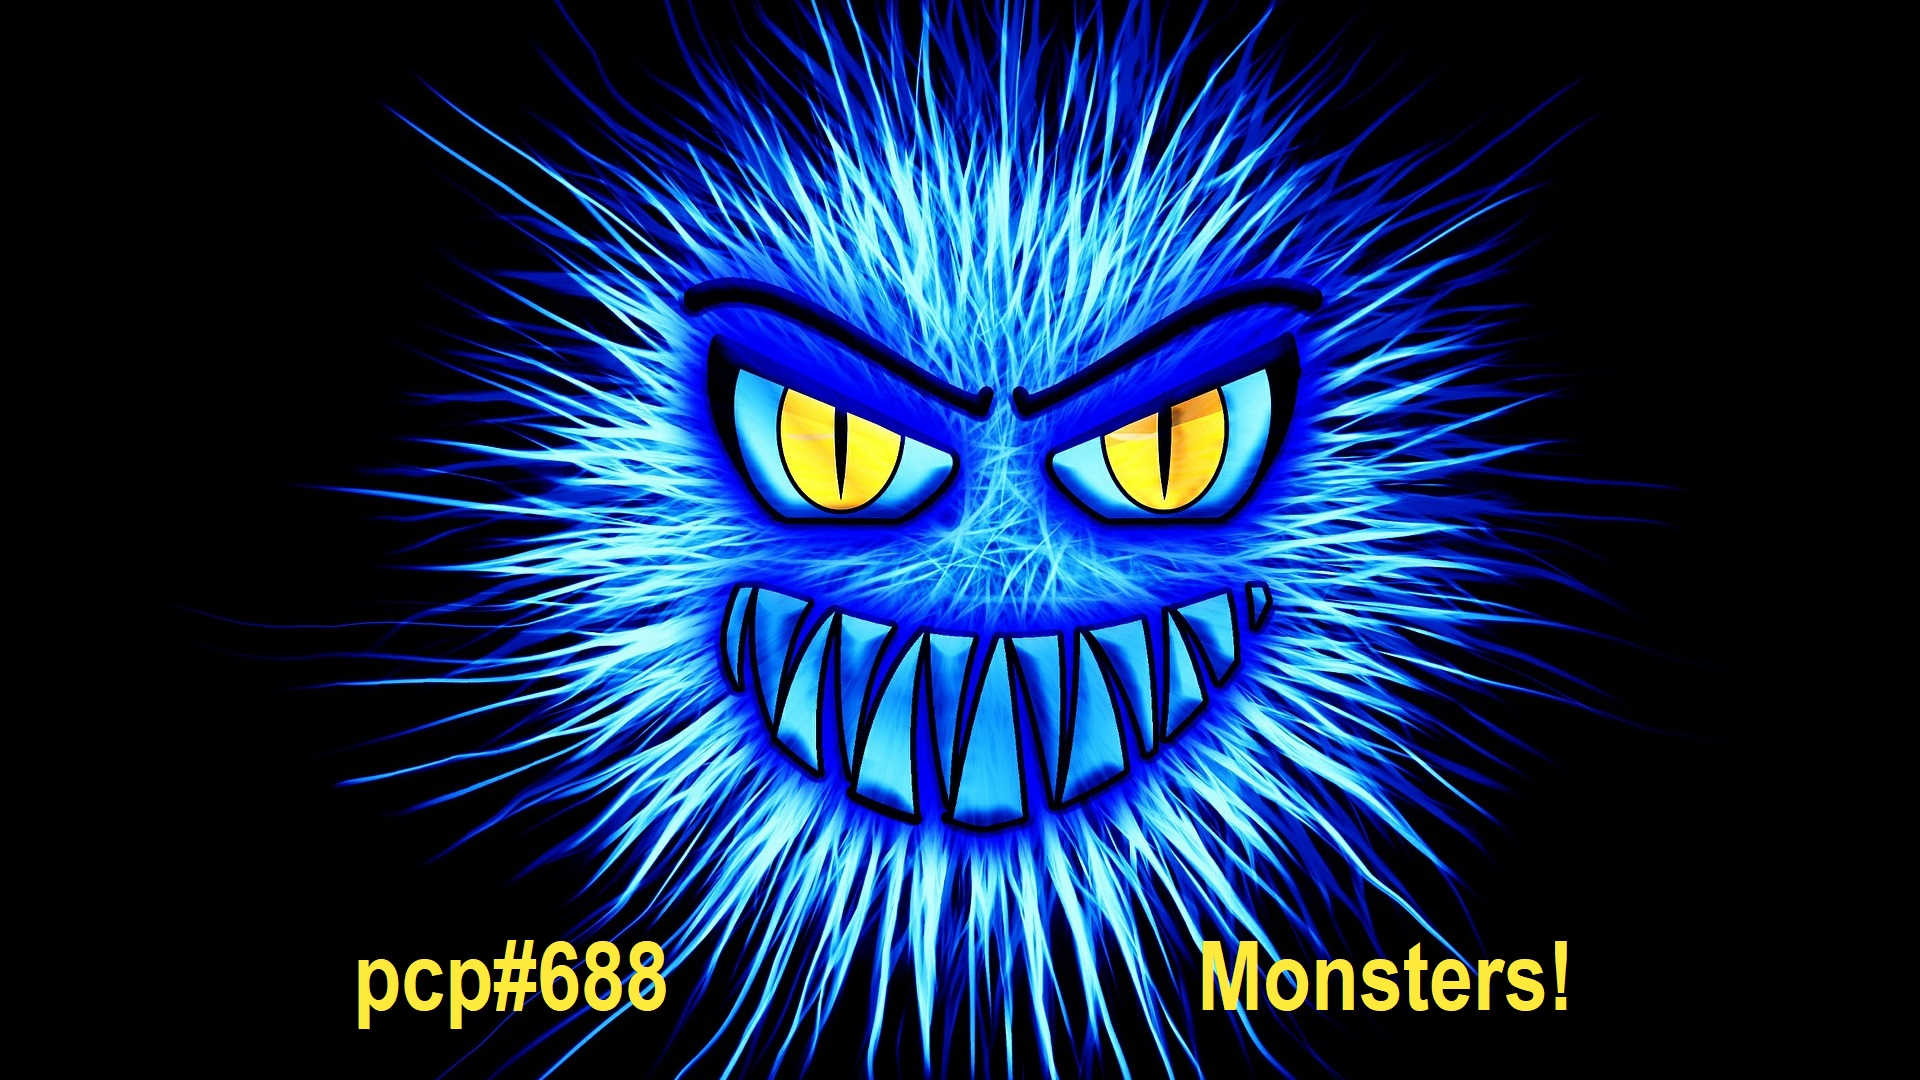 PCP#688... Monsters!